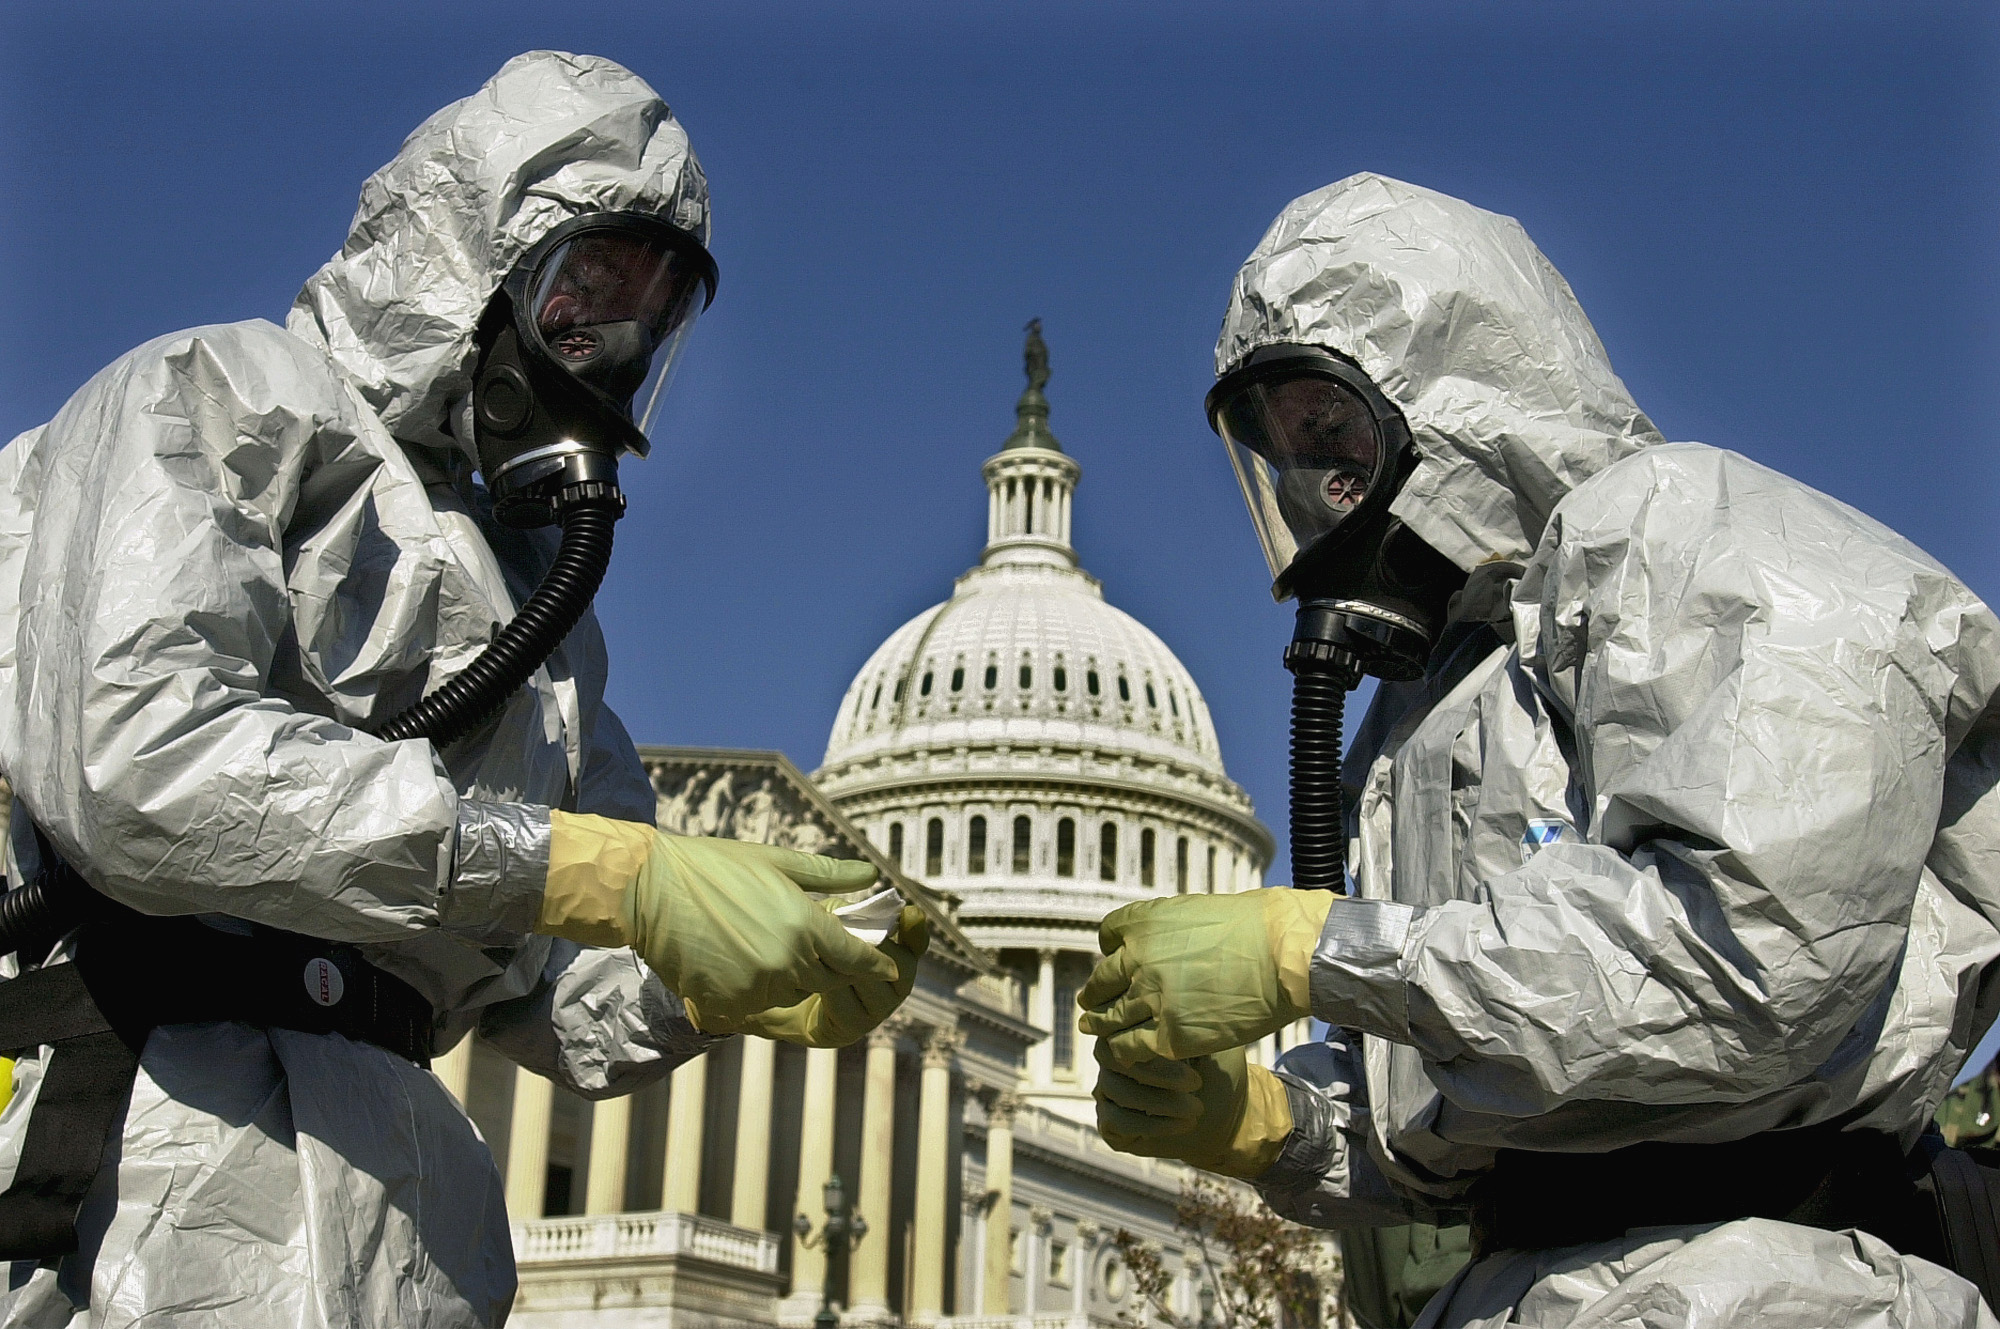 Members of a U.S. Marine Corps' Chemical-Biological Incident Response Force demonstrate anthrax clean-up techniques in Washington.